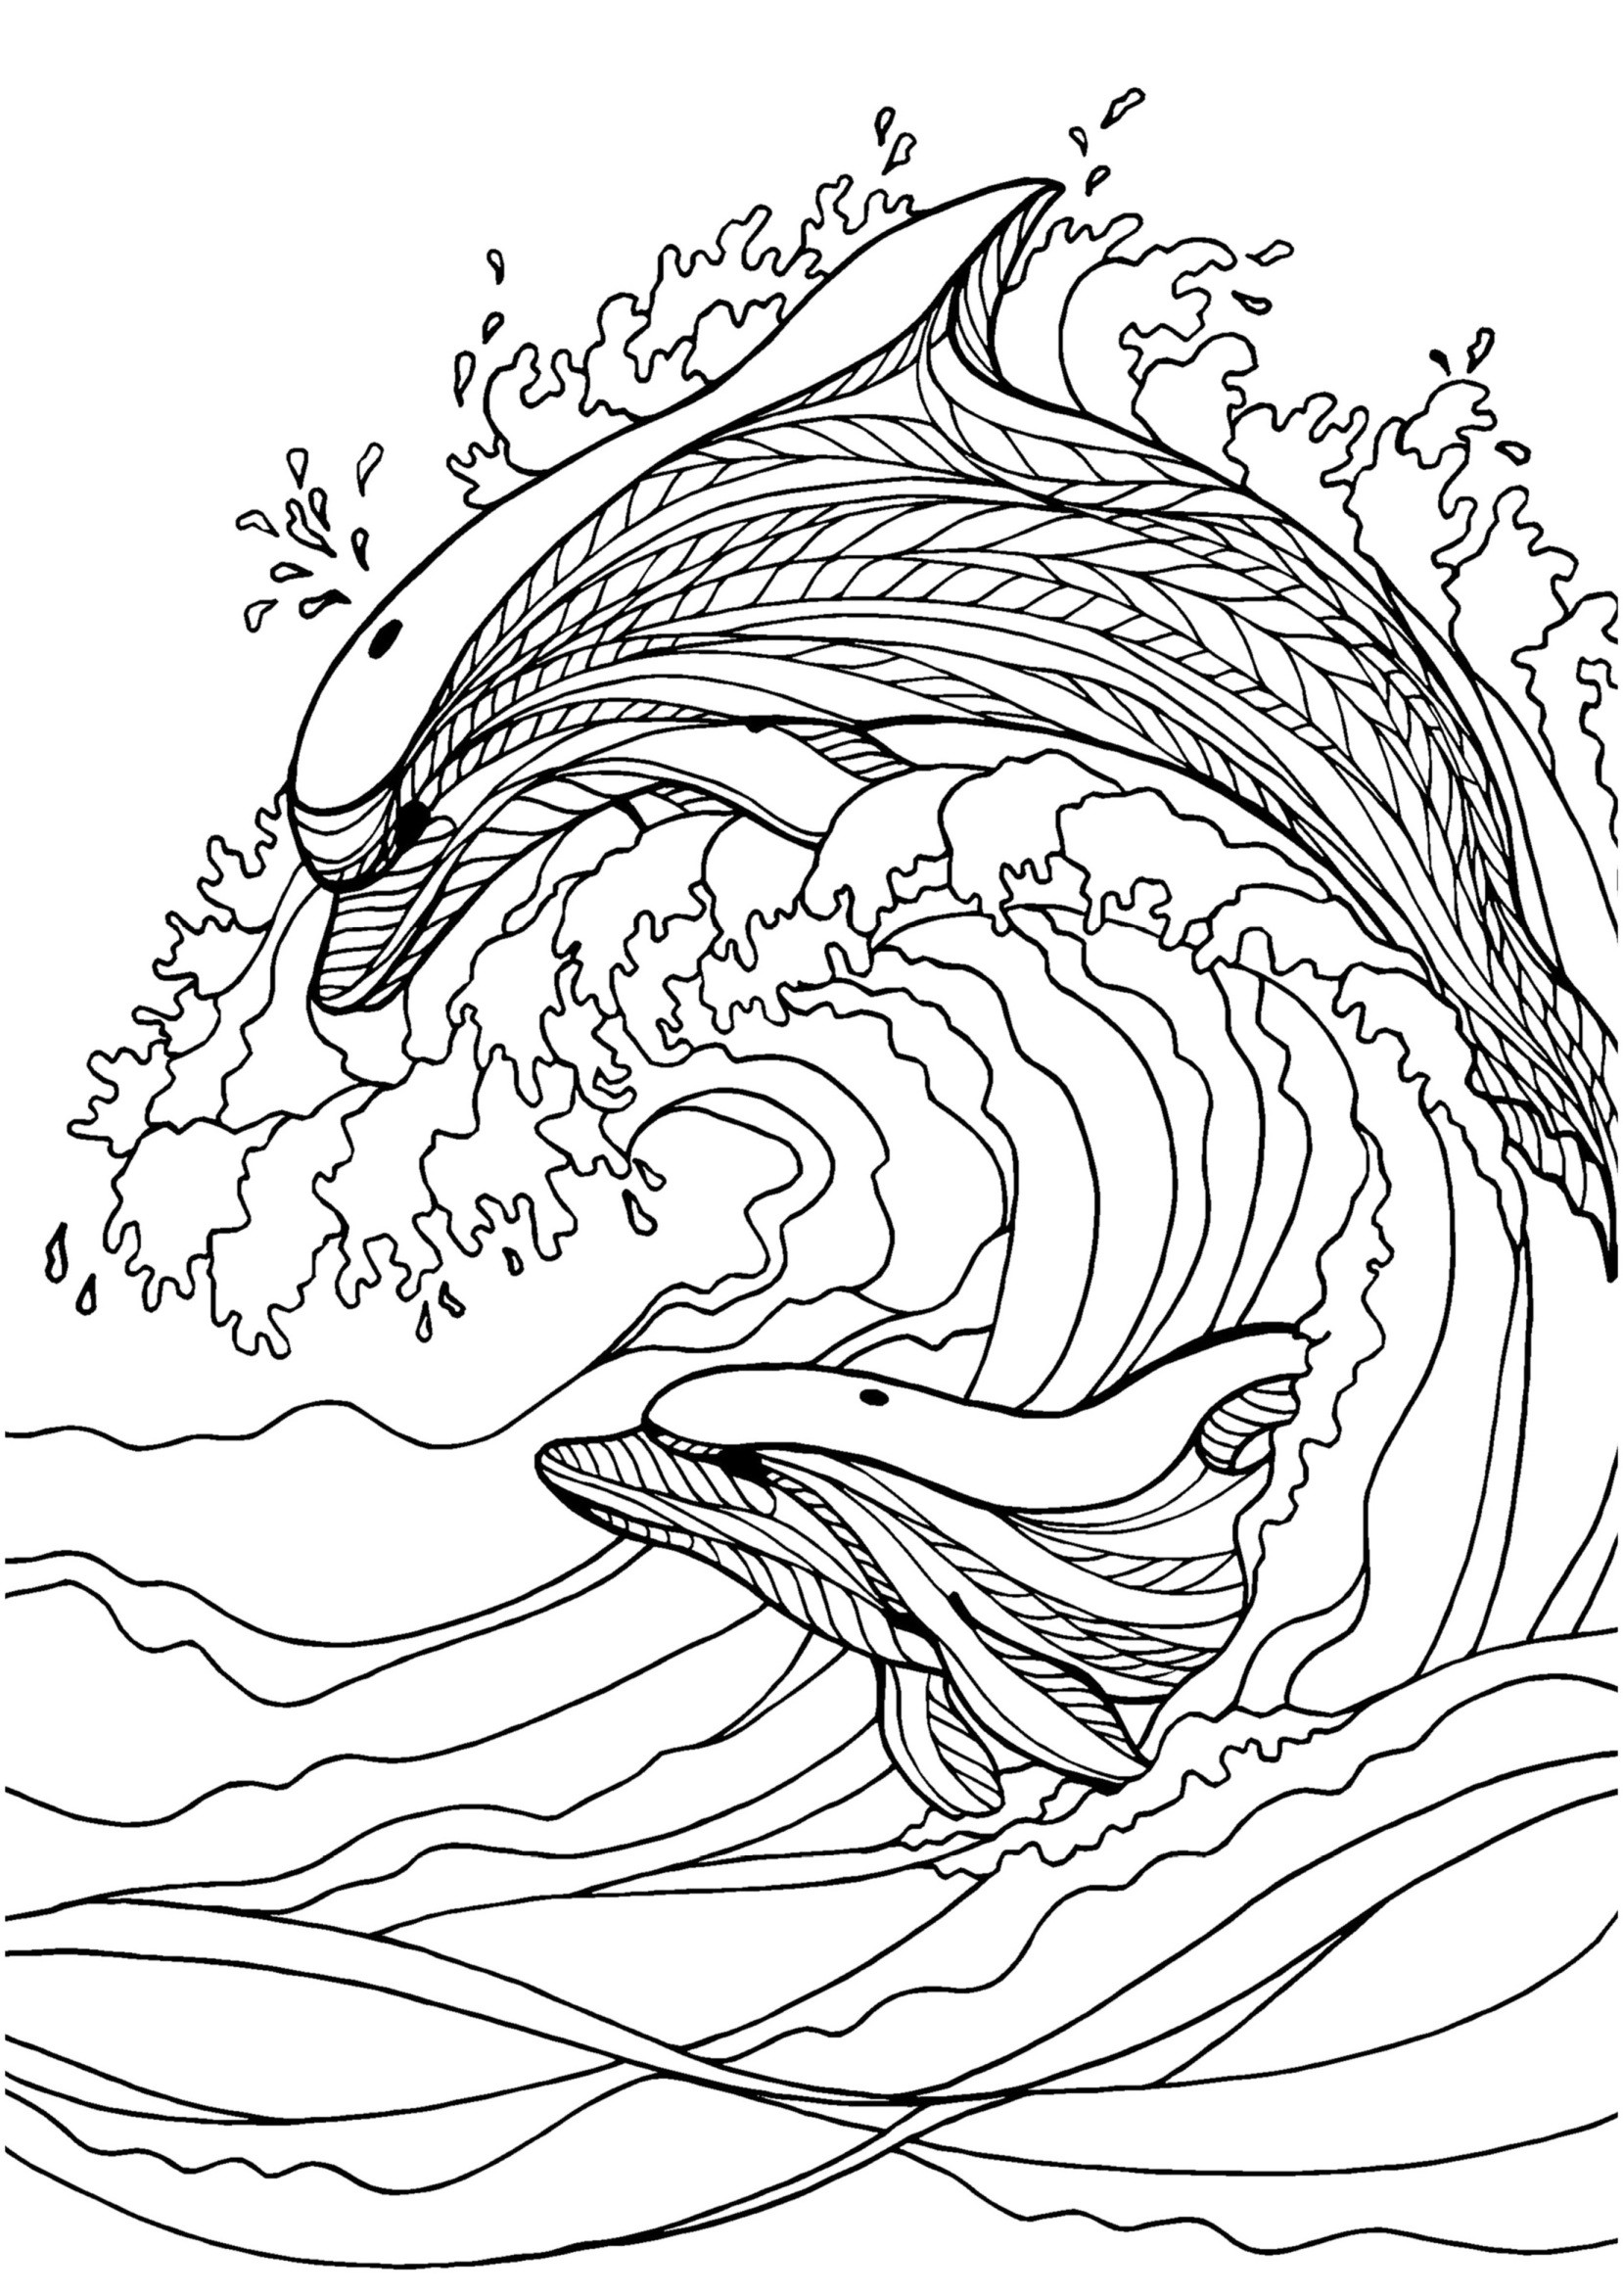 dolphins to color and print print download my experience of making dolphin dolphins to and color print